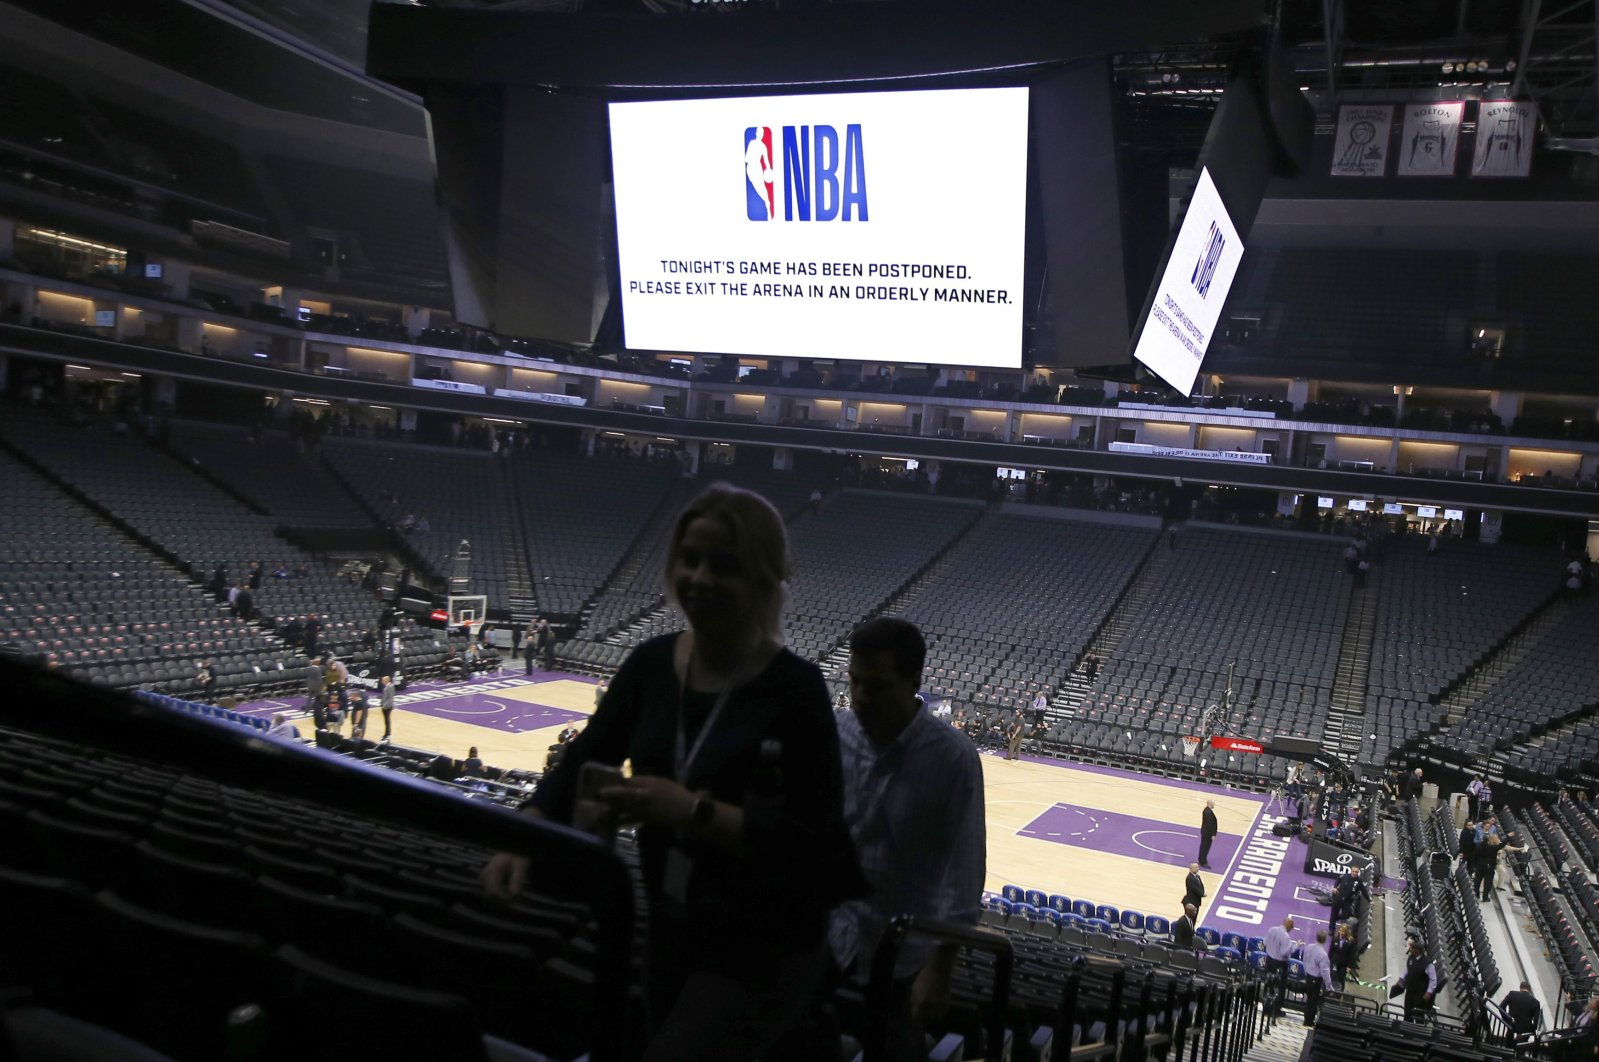 """Fans leave the Golden 1 Center after the NBA basketball game between the New Orleans Pelicans and Sacramento Kings was postponed at the last minute in Sacramento, Calif., Wednesday, March 11, 2020. The league said the decision was made out of an """"abundance of caution,"""" because official Courtney Kirkland, who was scheduled to work the game, had worked the Utah Jazz game earlier in the week. A player for the Jazz tested positive for the coronavirus. (AP Photo)"""